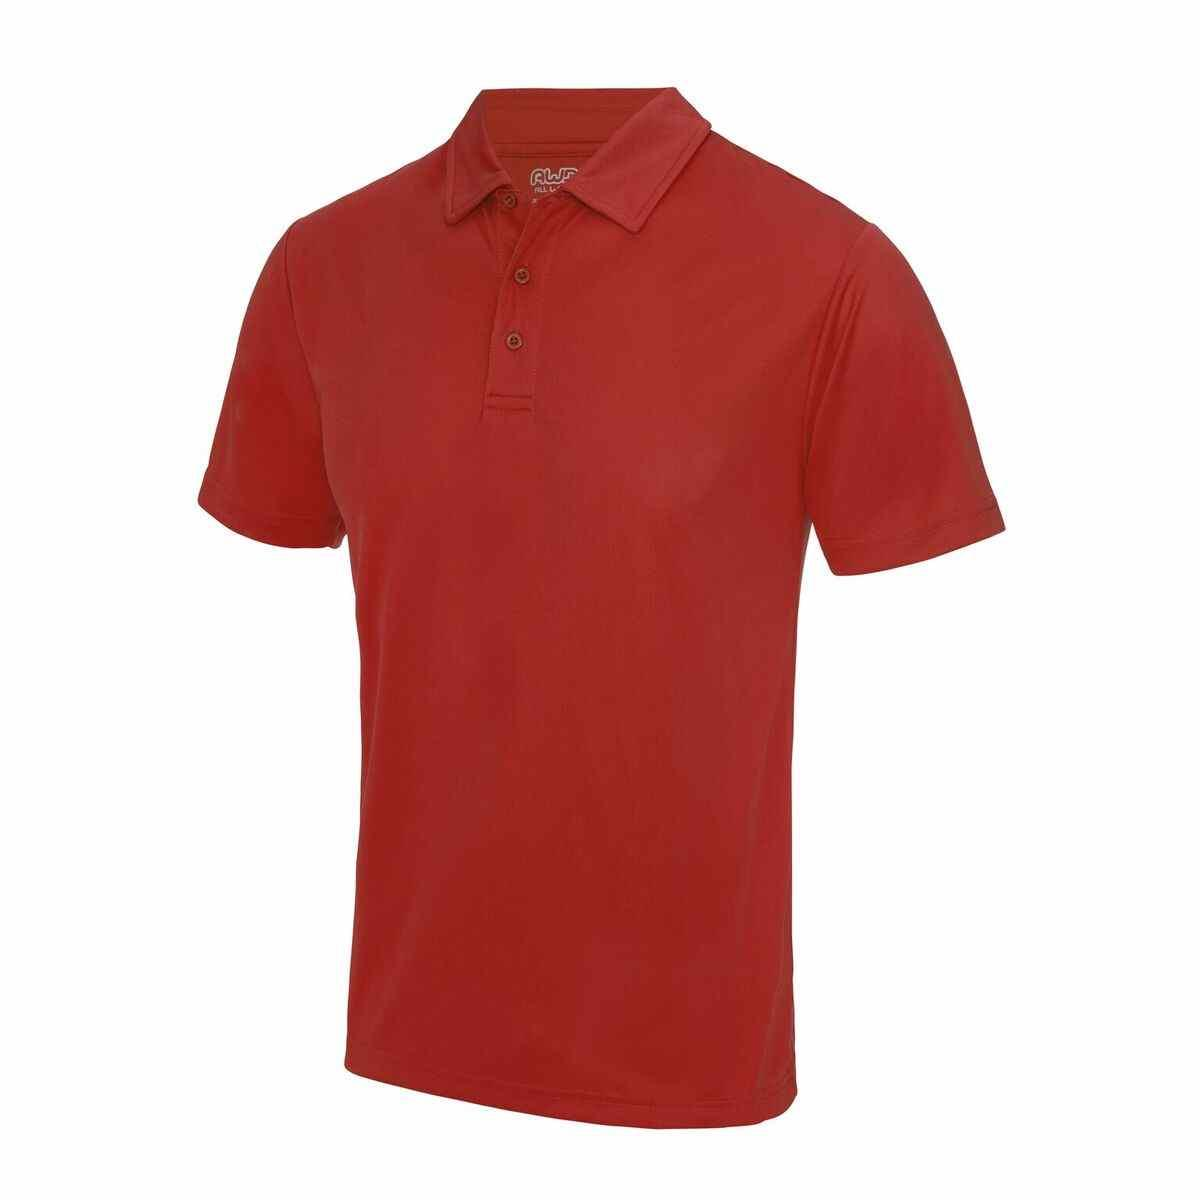 Fire Red Poolside Polo Shirt